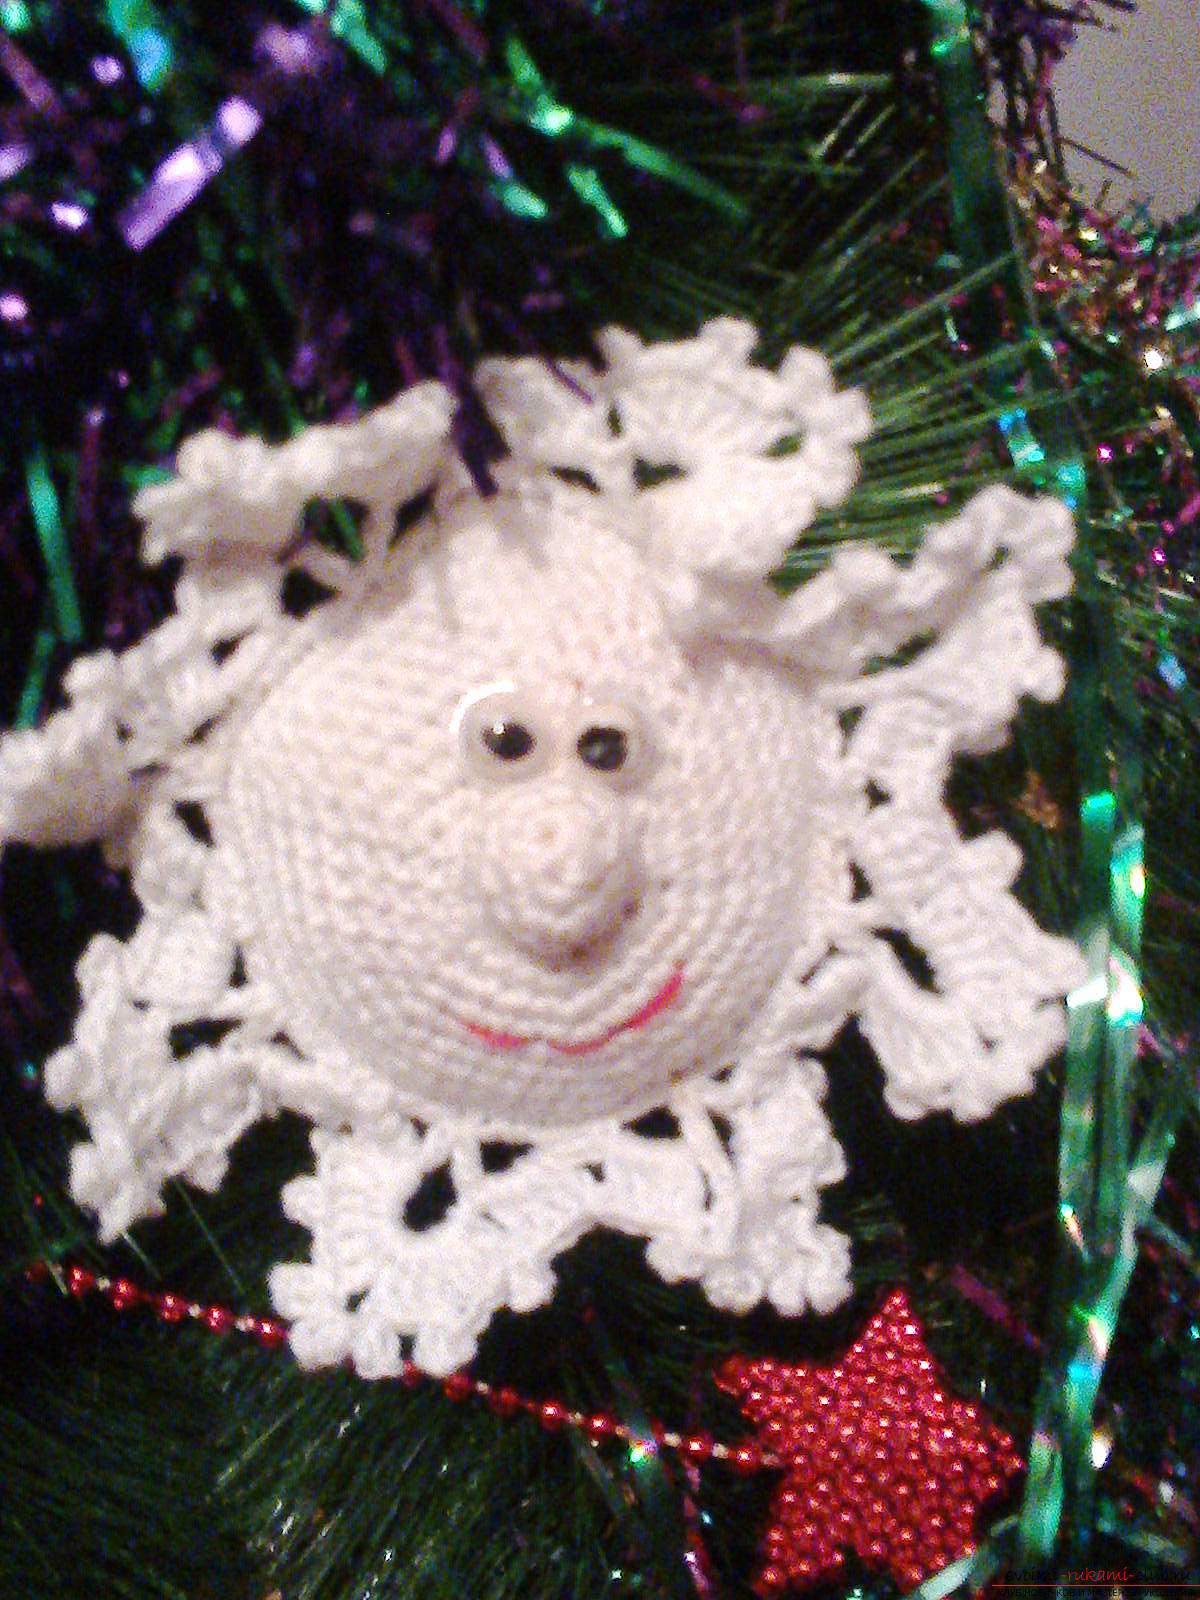 This master class crochet will teach how to knit Christmas toys - snowflakes. Photo №1